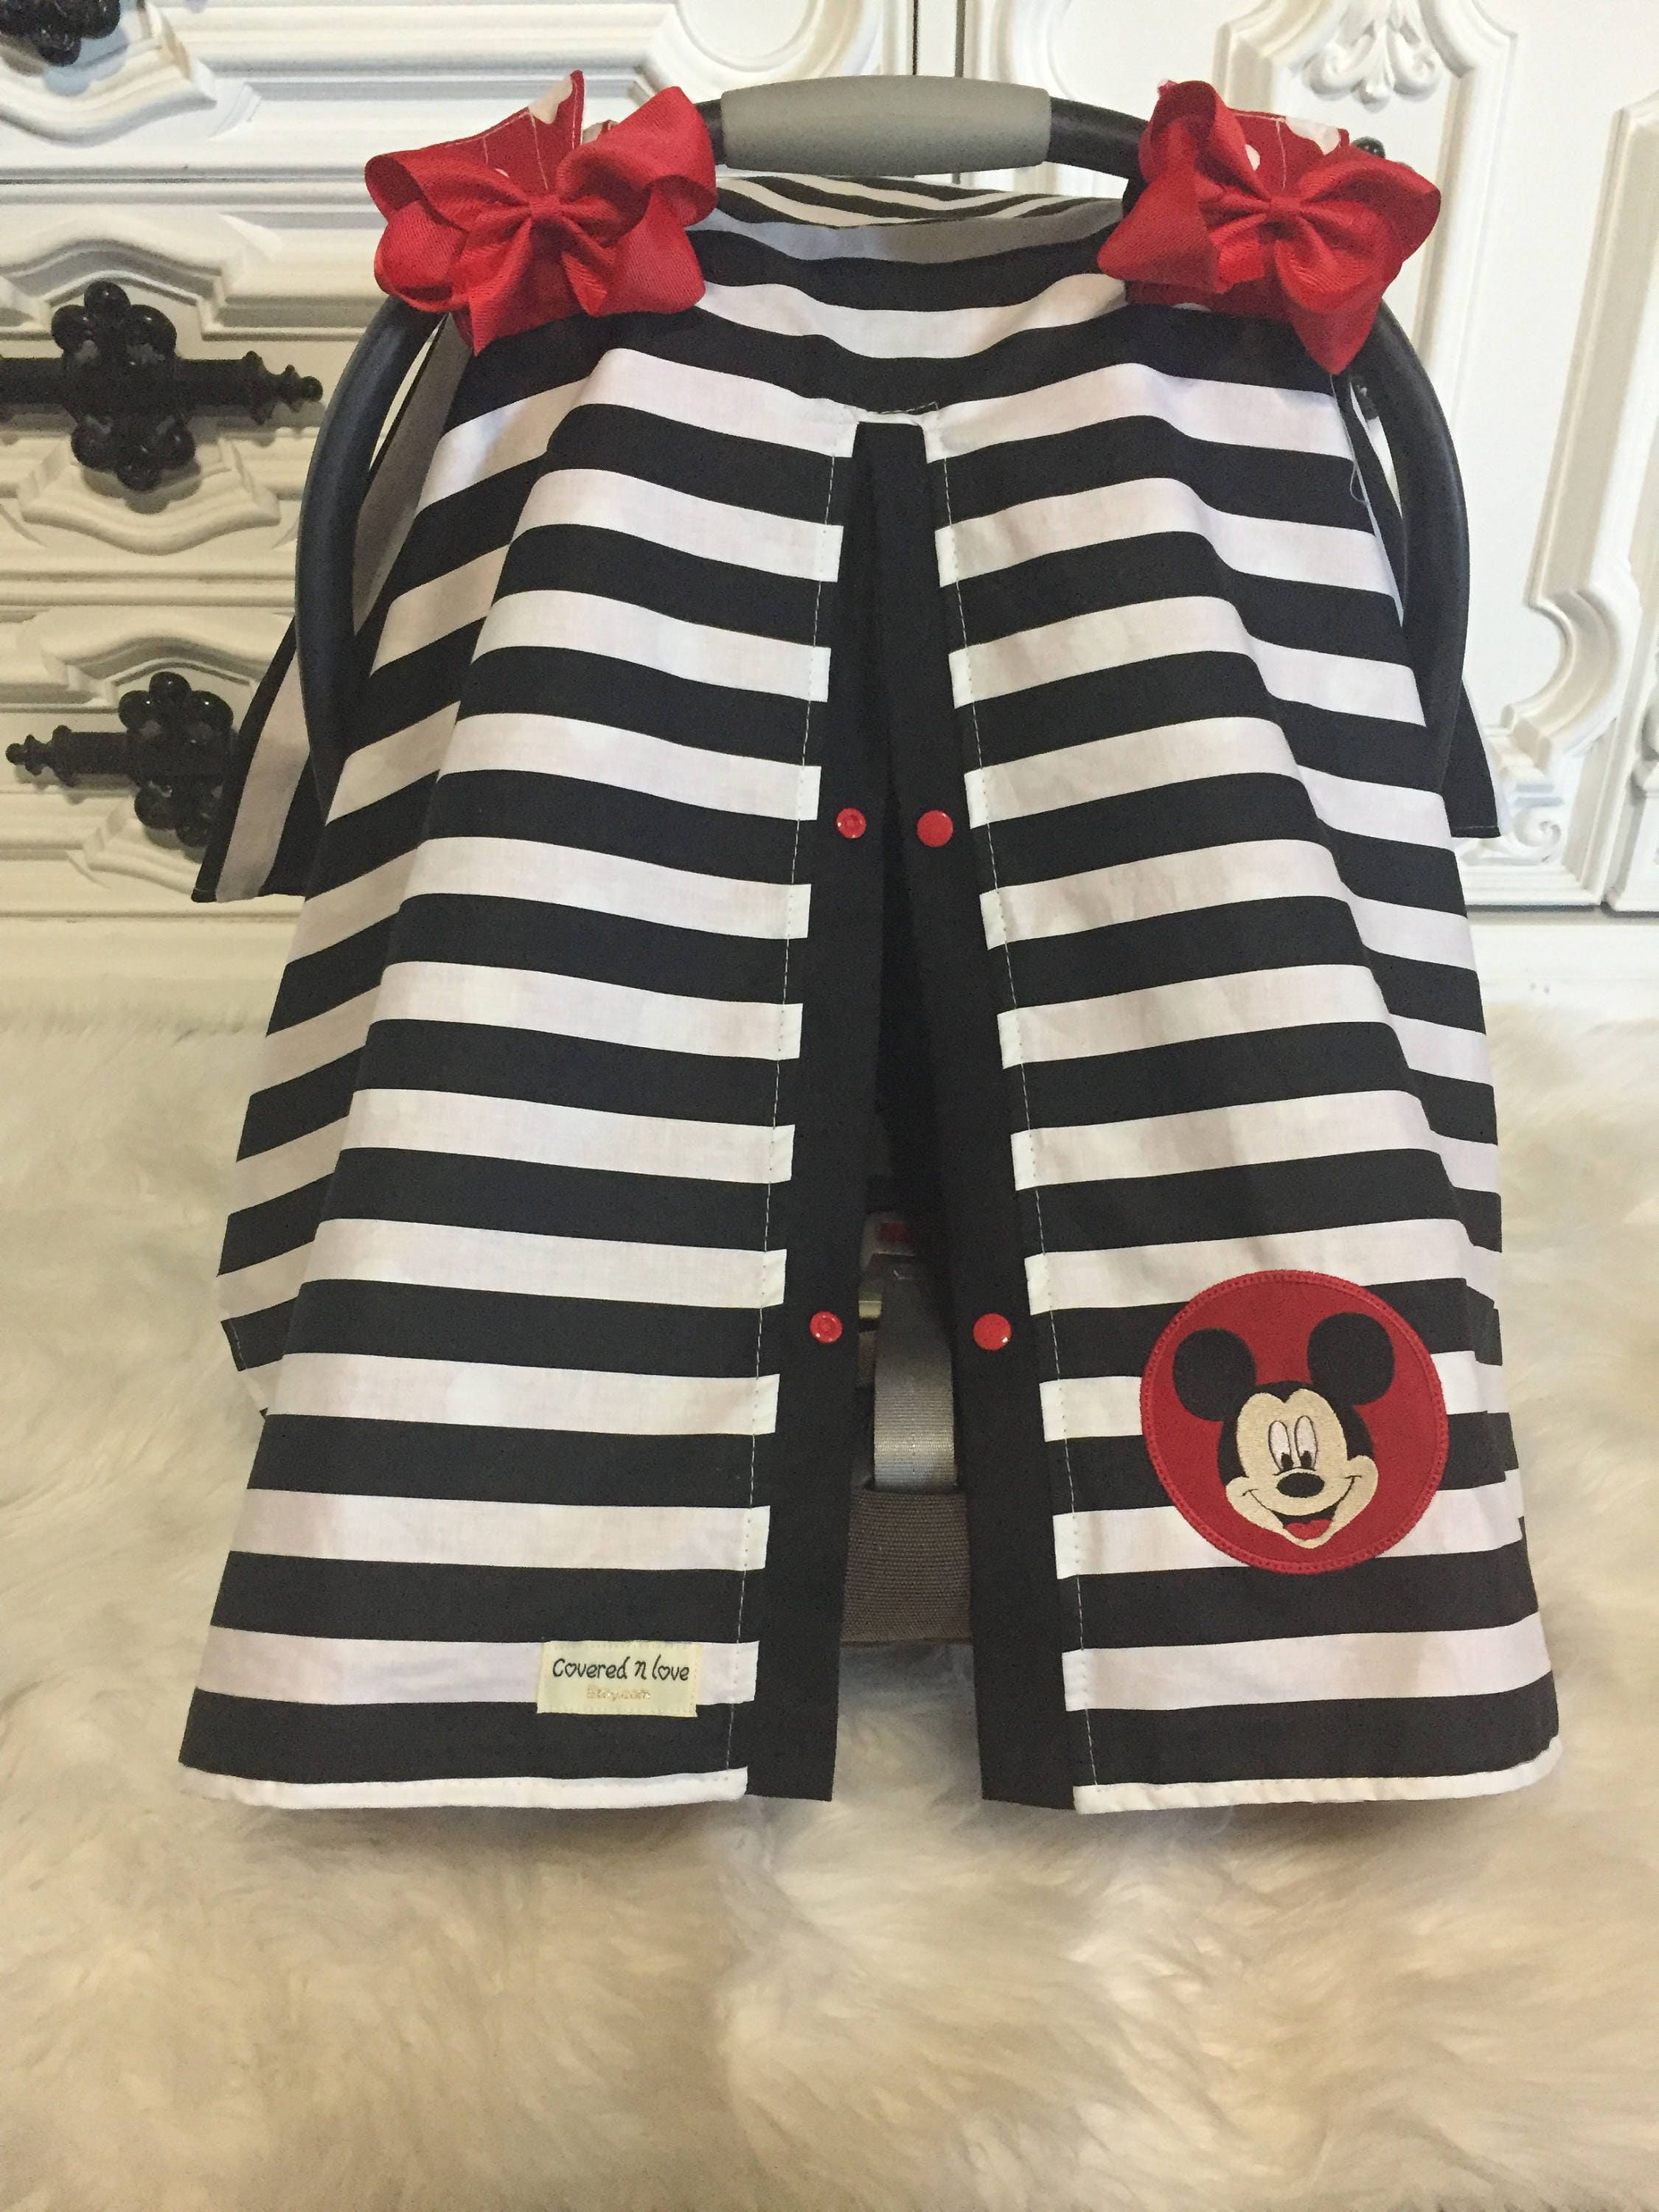 Mickey Mouse car seat canopy  car seat cover  carseat canopy  minnie mouse  mickey mouse  disney & Mickey Mouse car seat canopy  car seat cover  carseat canopy ...